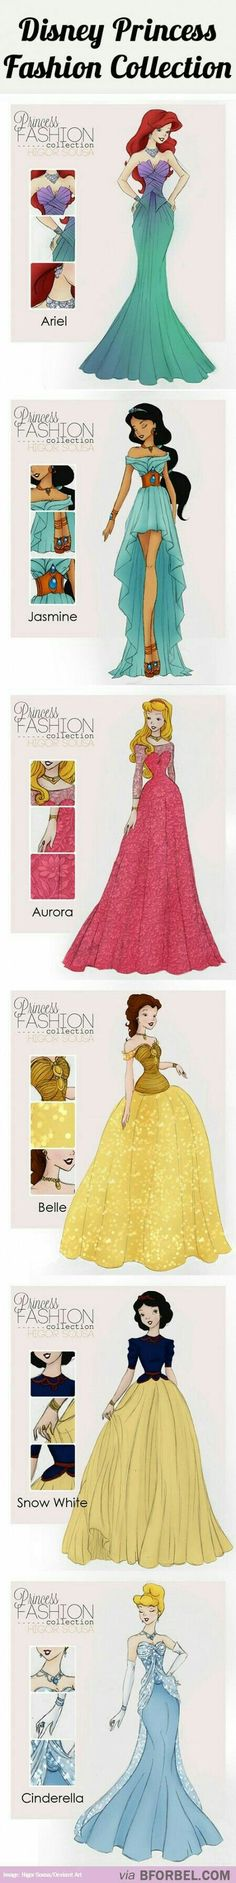 6 Disney Princess Fashion Collection they are really cute! Walt Disney, Disney Pixar, Cute Disney, Disney Girls, Disney And Dreamworks, Disney Magic, Disney Movies, Disney Characters, Funny Disney